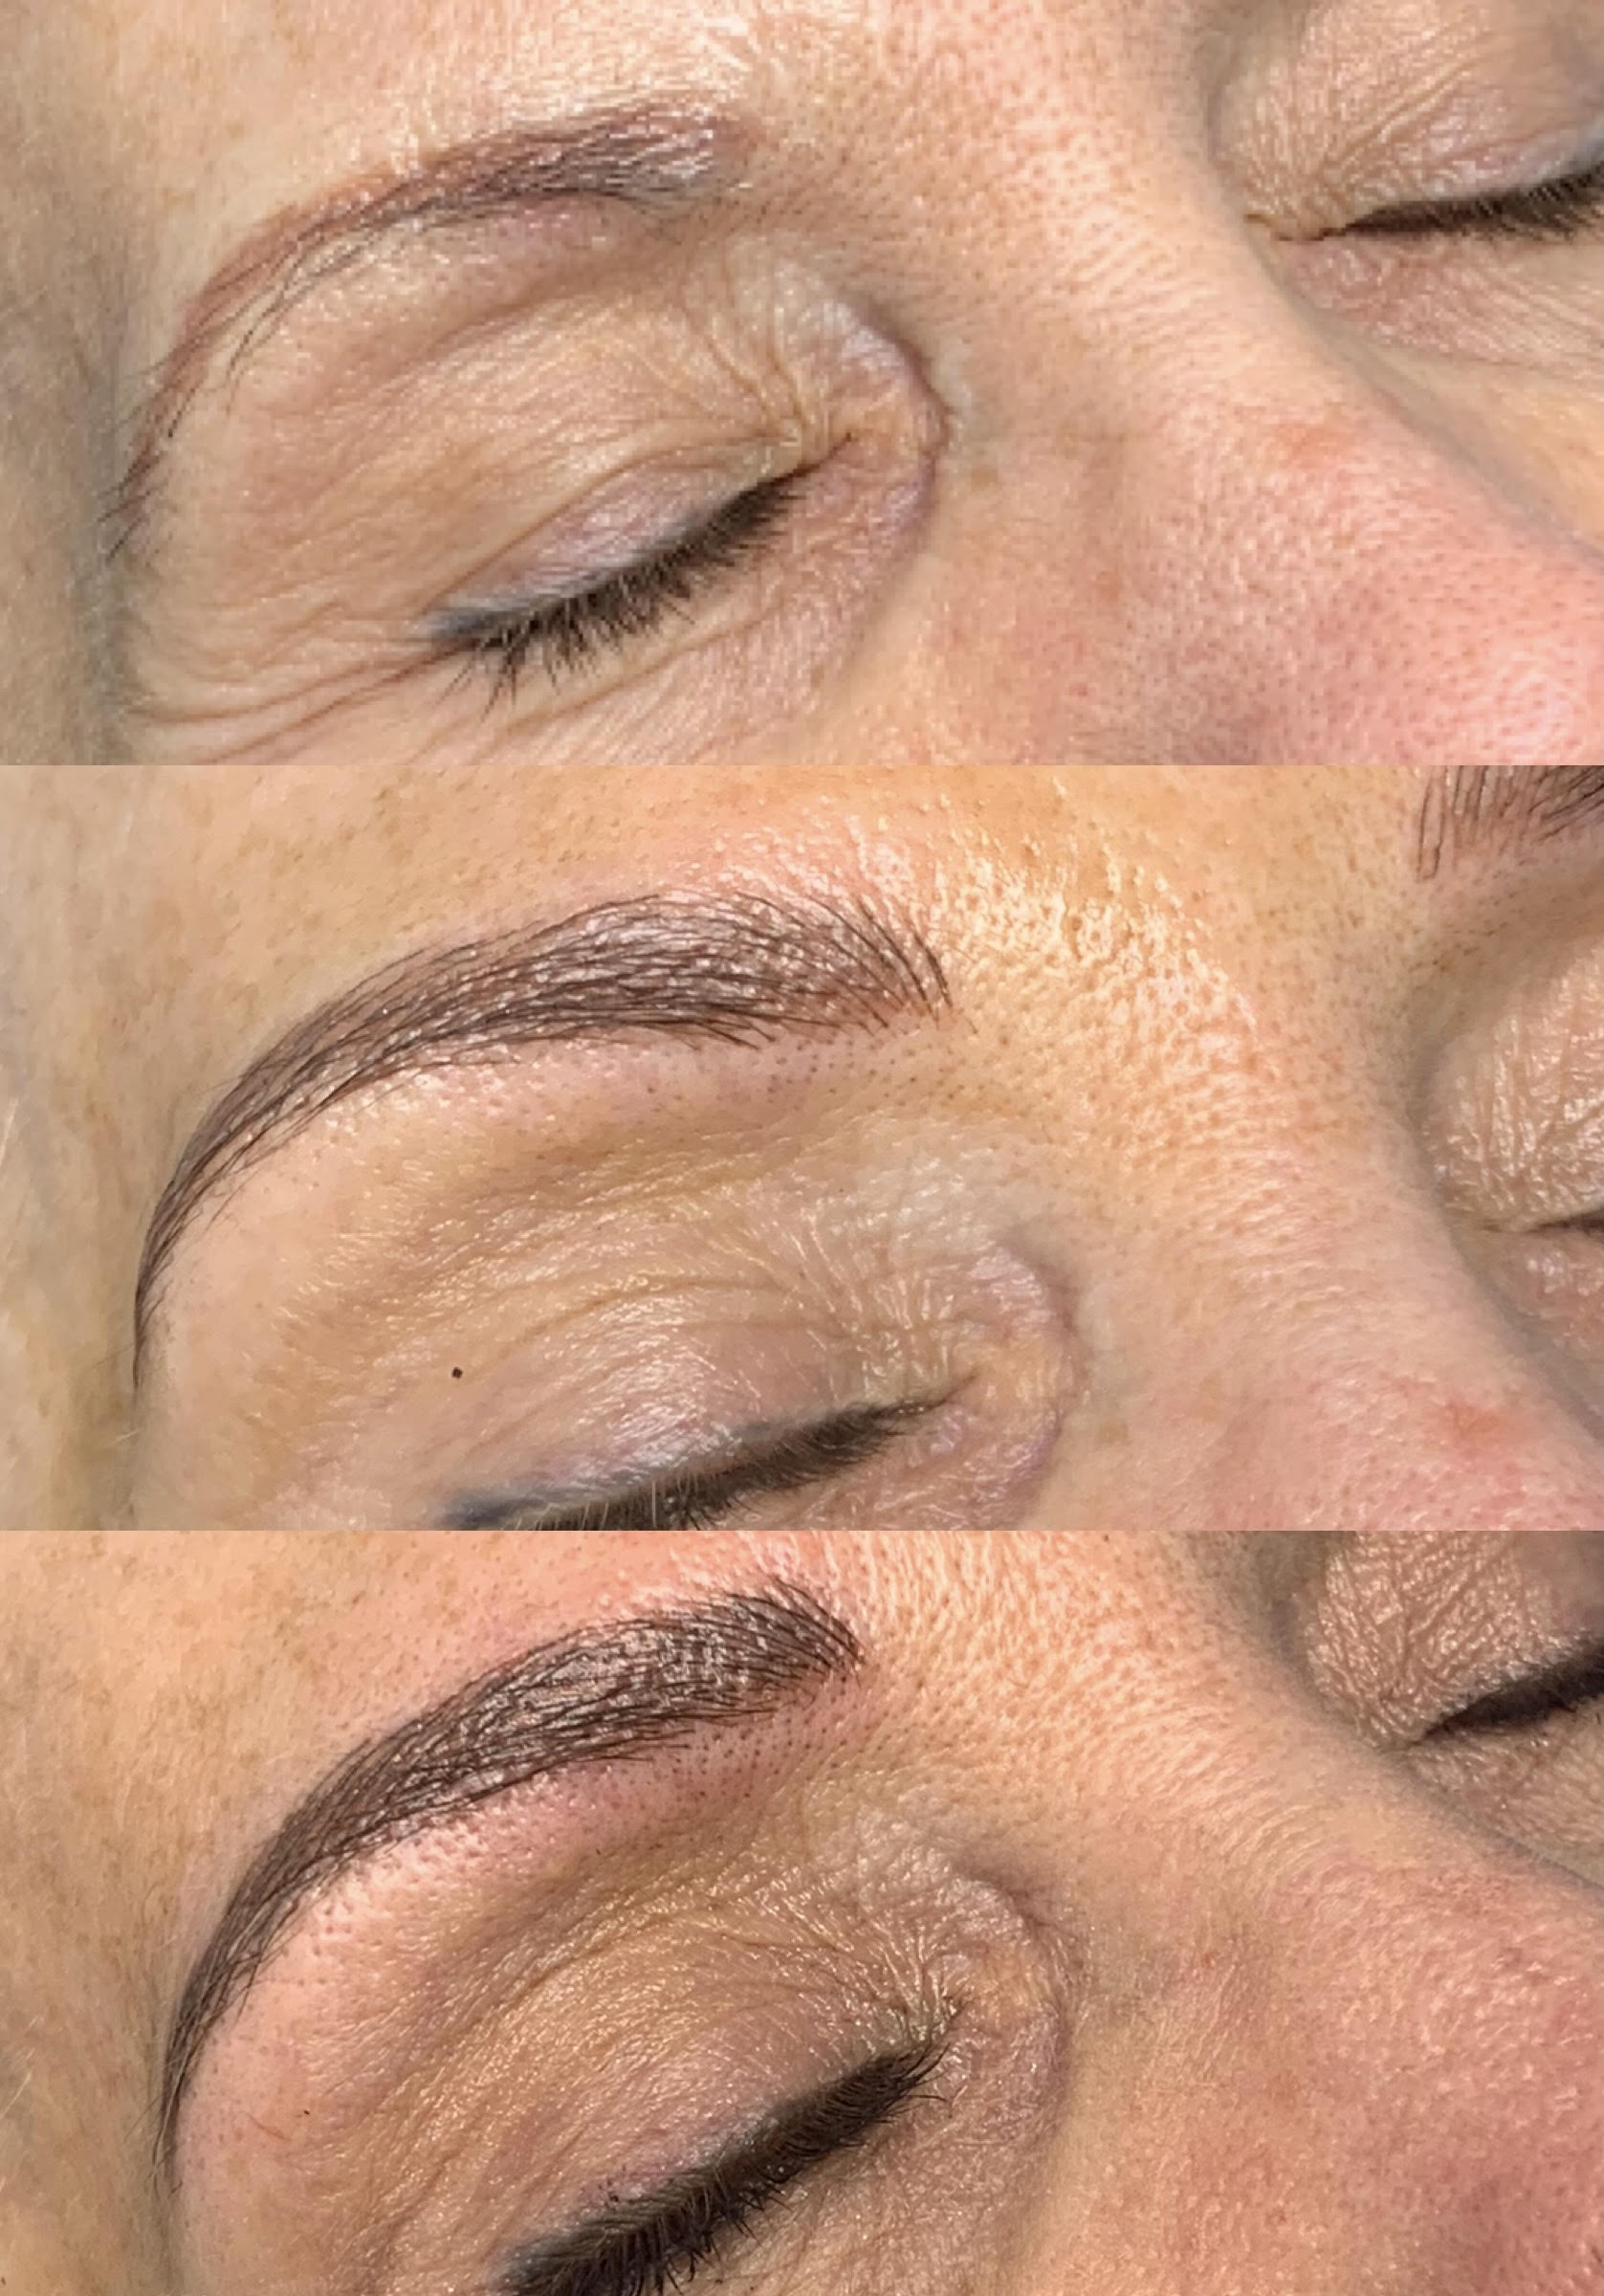 Before and after photos for microblading